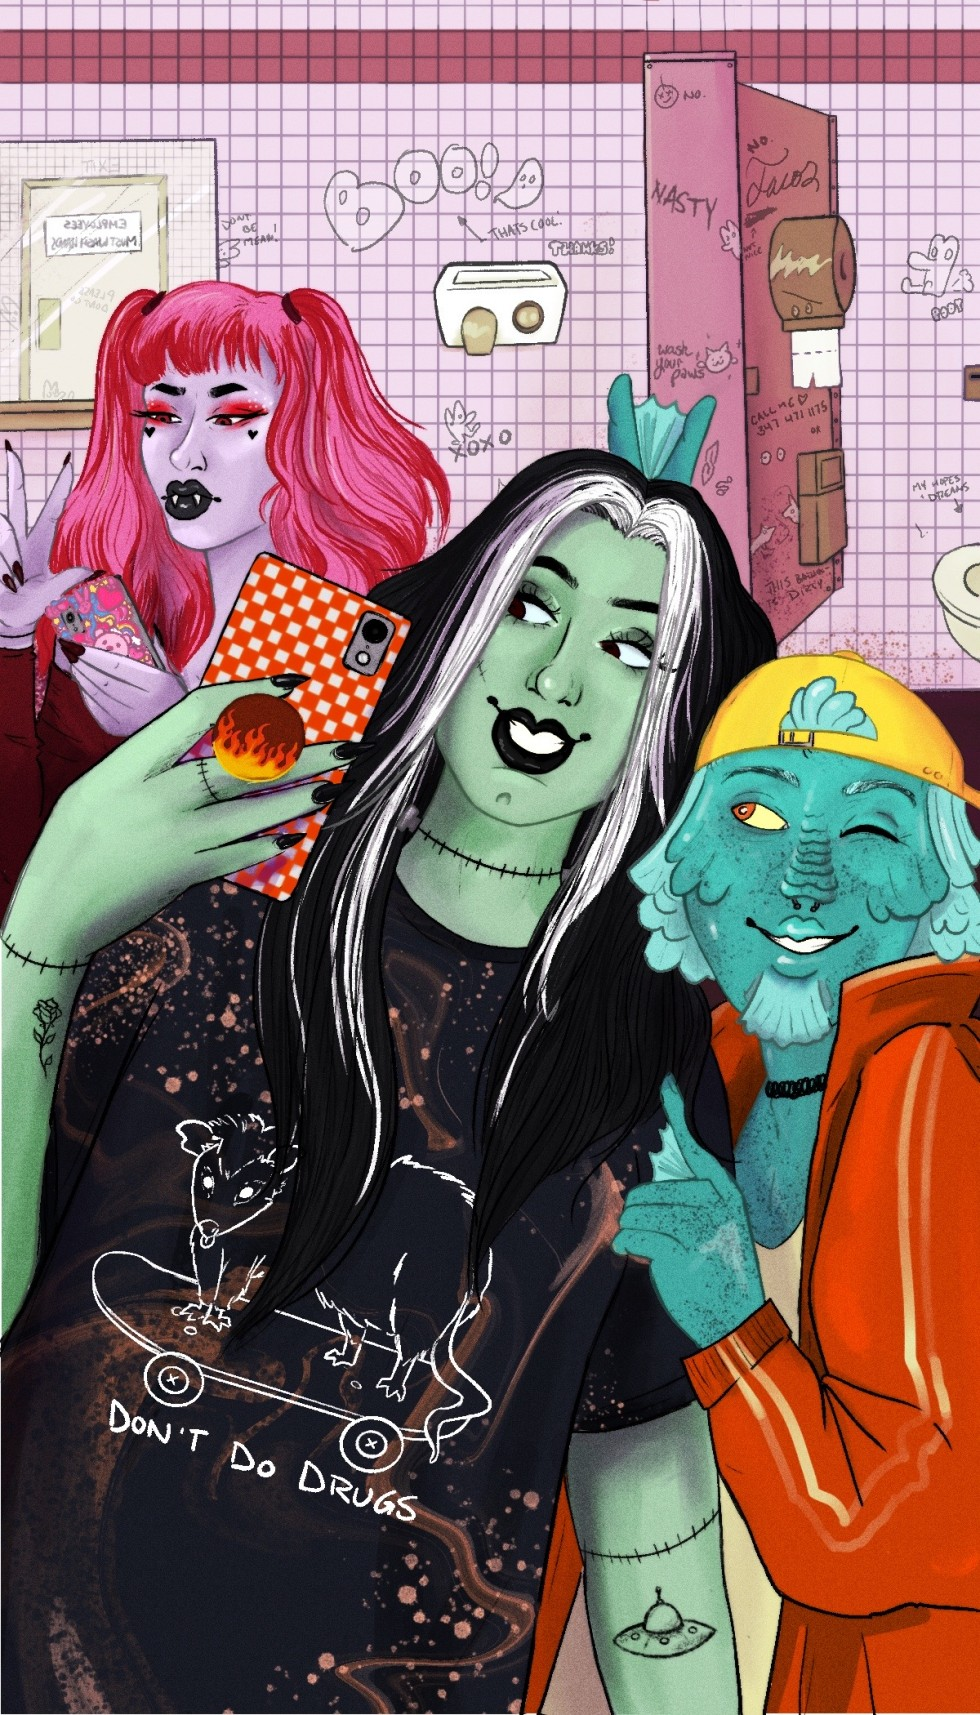 Illustration of three monster friends taking a selfie in a pink graffiti filled bathroom.